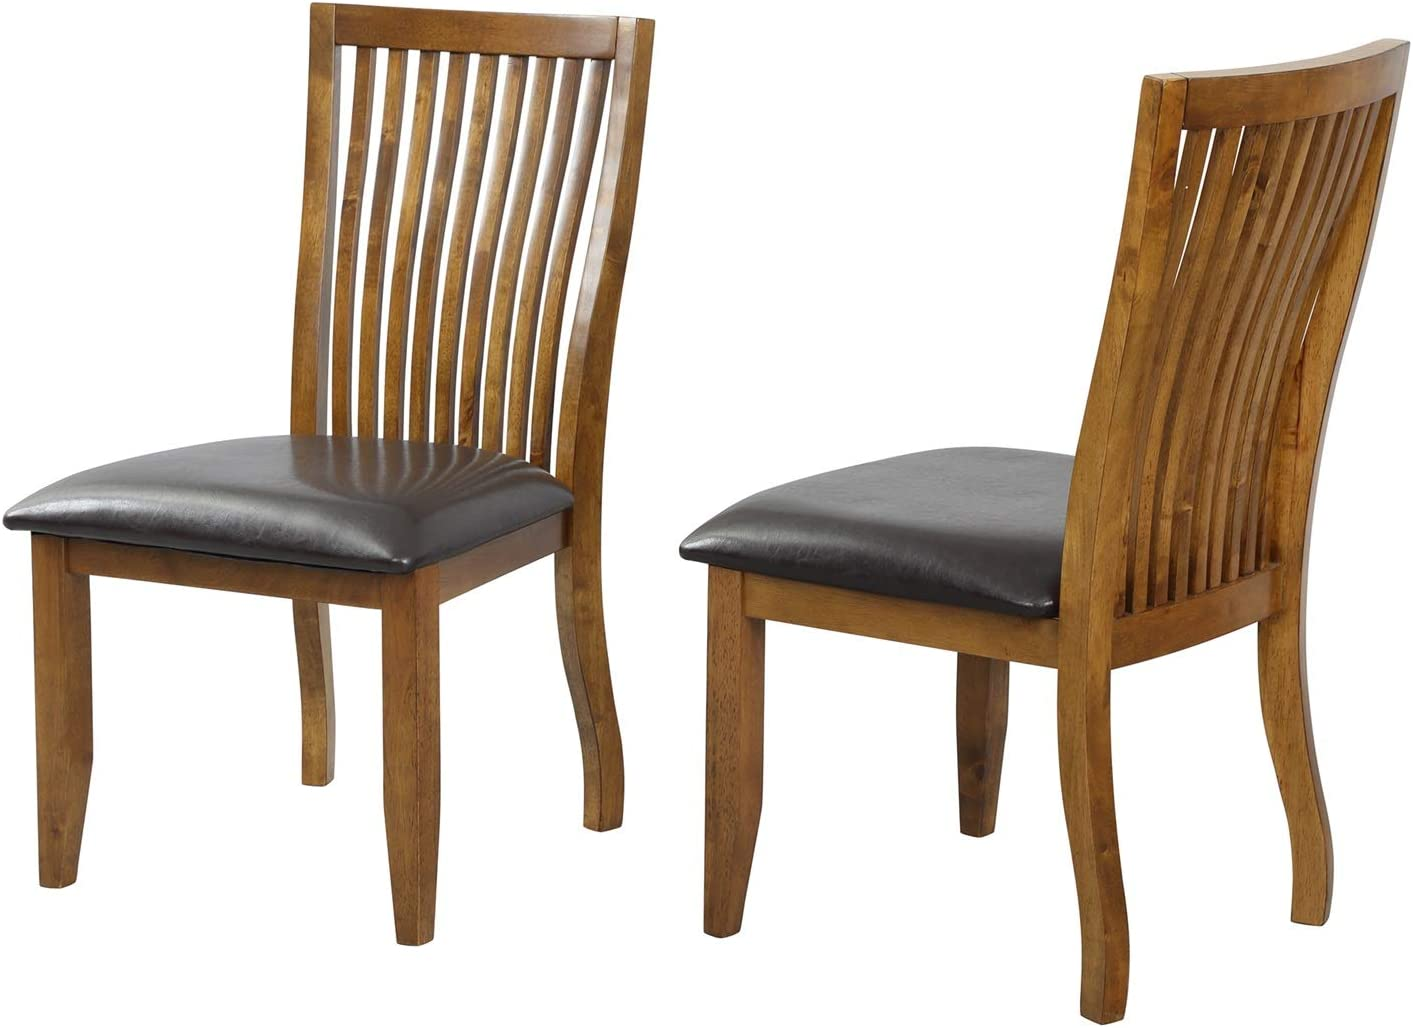 XIAOTIAN 2-Piece Dining Chair Set with PU Covered Cushion and Solid Wood Legs